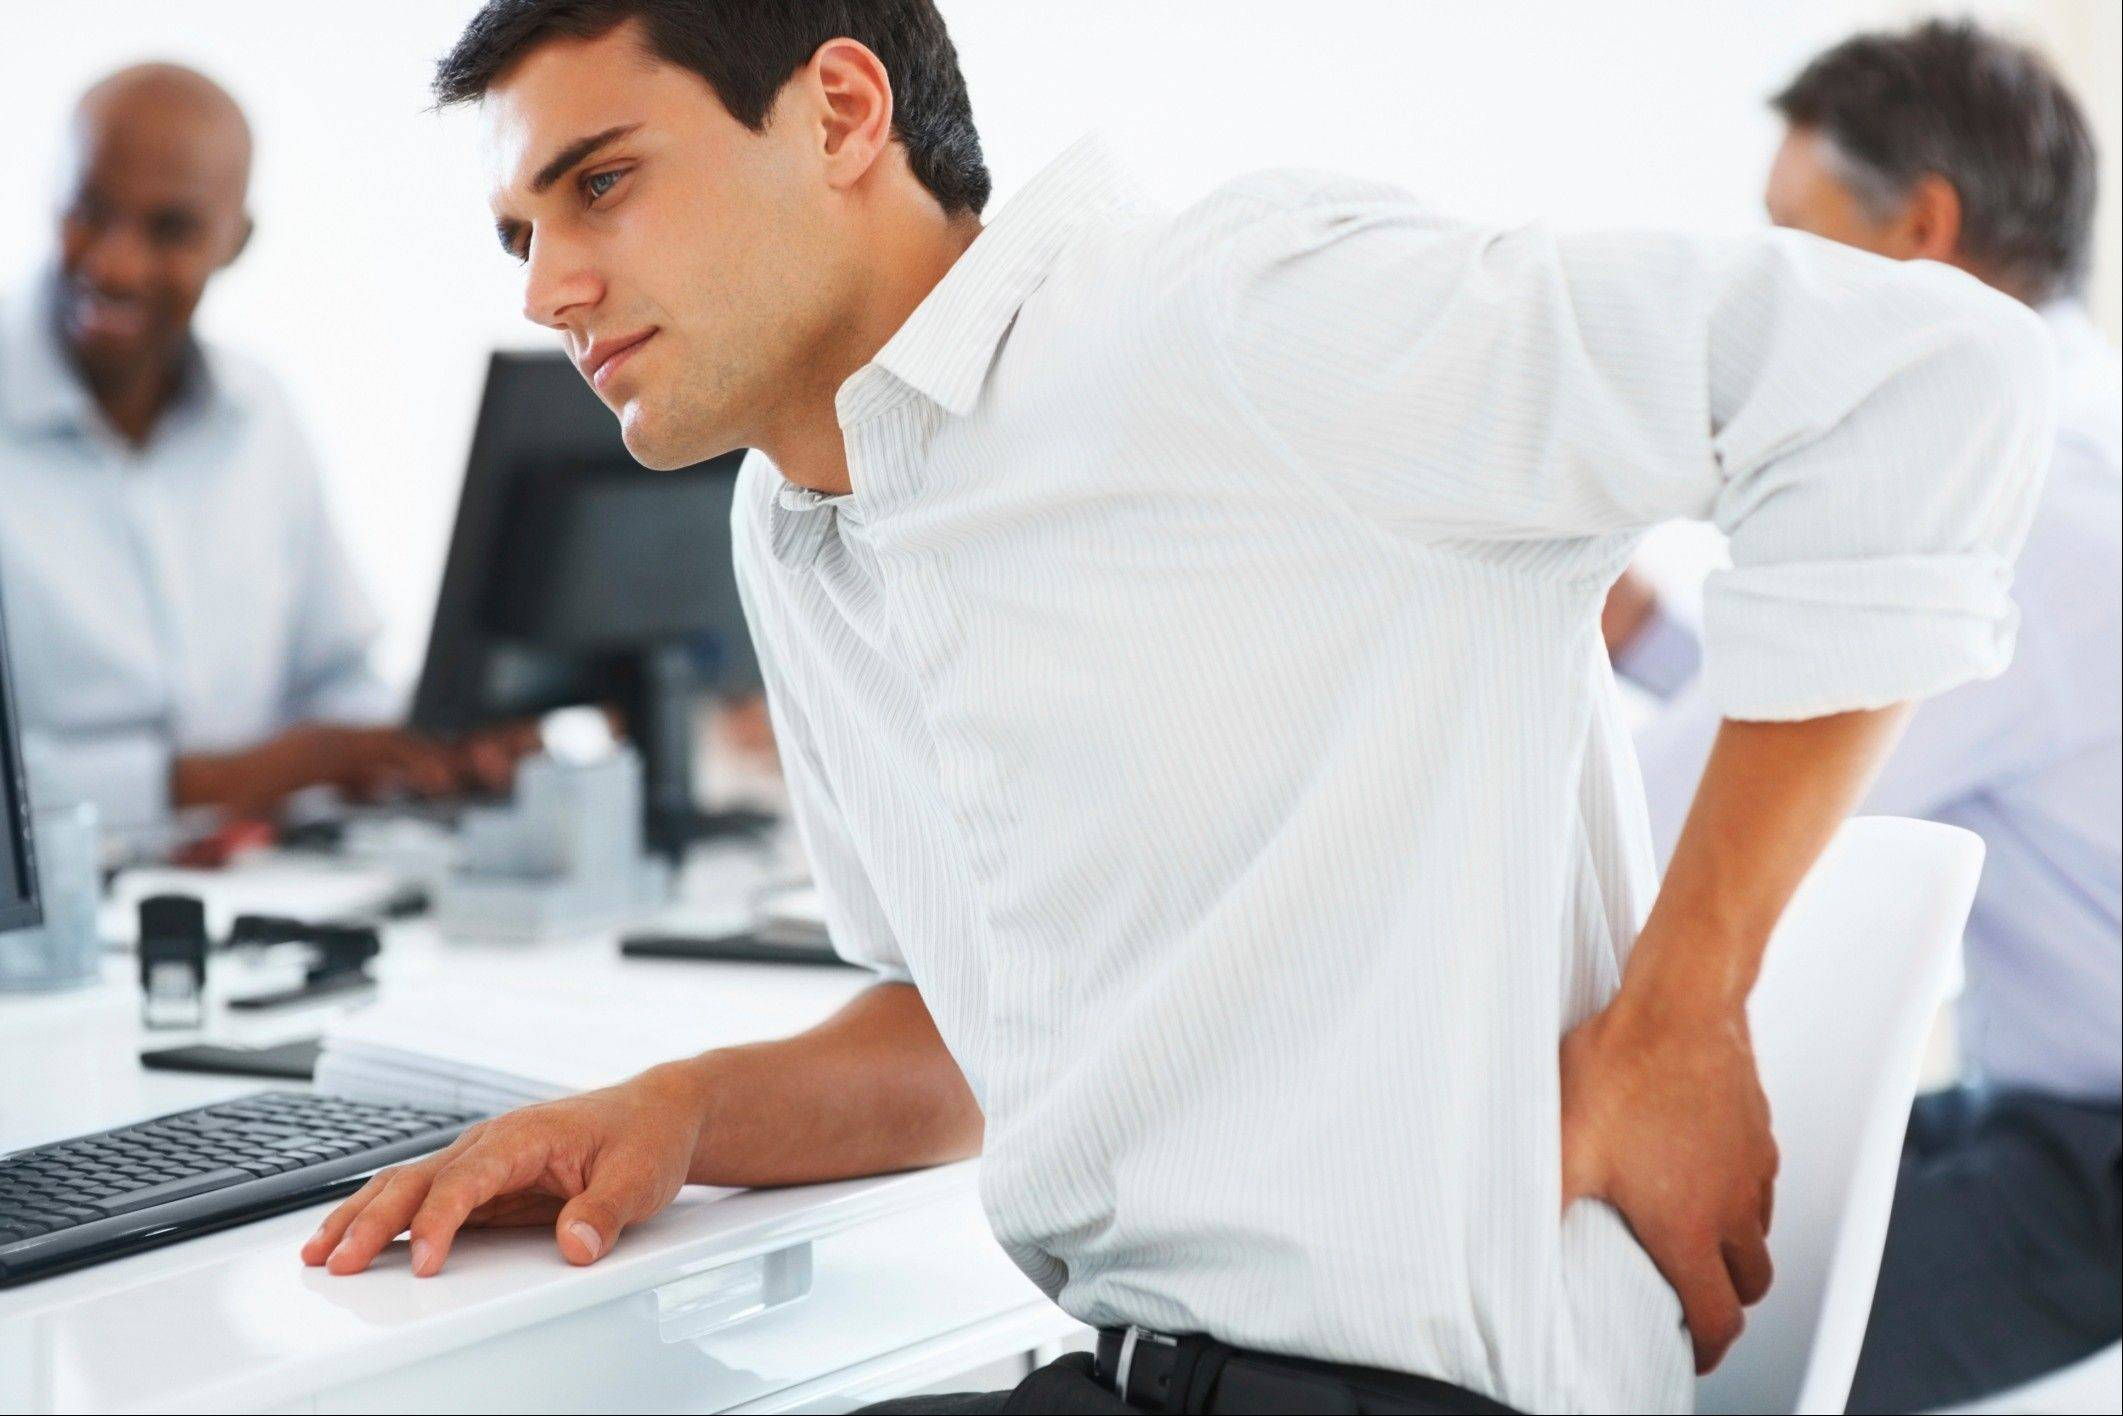 Sitting for long periods of time can hurt your back and impact your overall health.